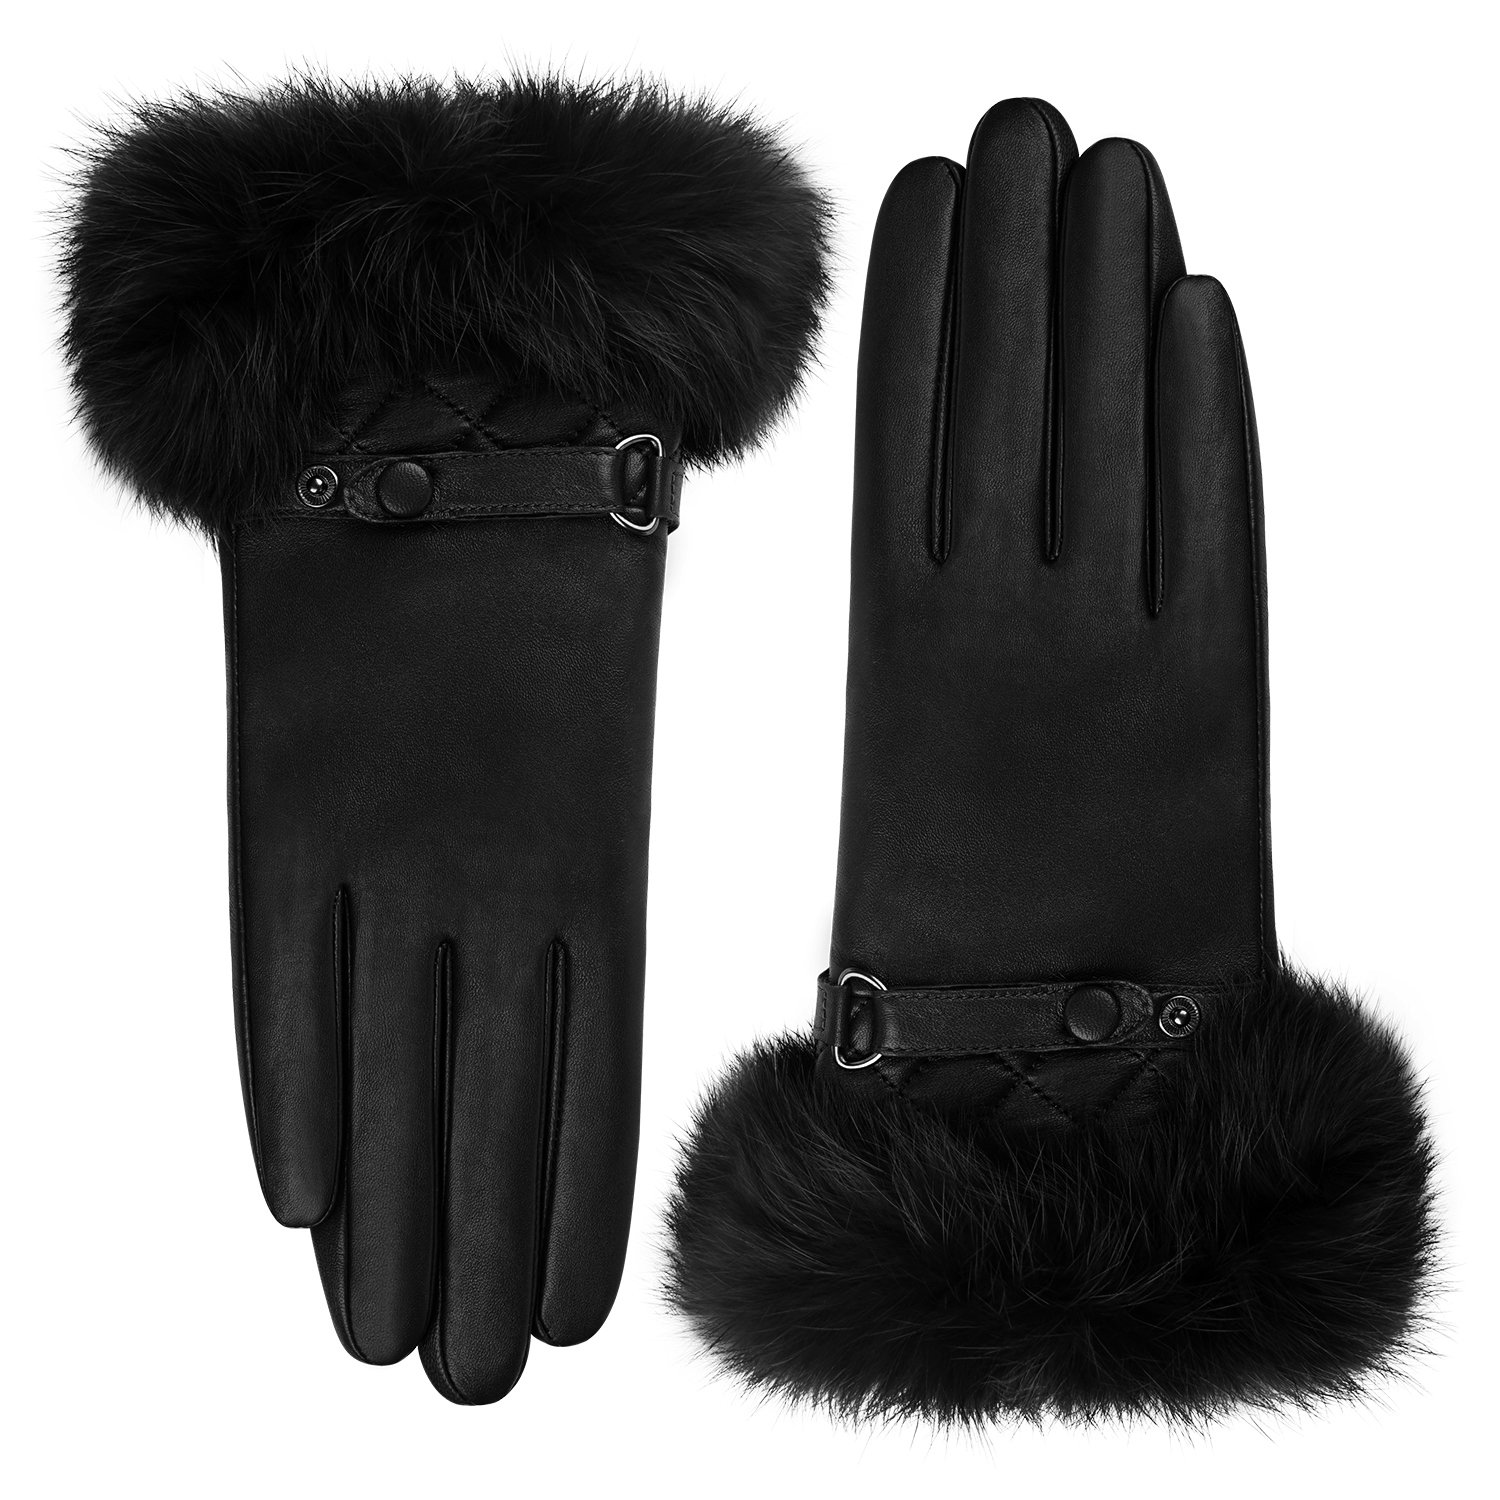 GSG Womens Luxury Italian Genuine Nappa Leather Gloves Fashion Fur Trim Full Palm Touchscreen Winter Warm Gloves Black 8.5 by GSG (Image #4)